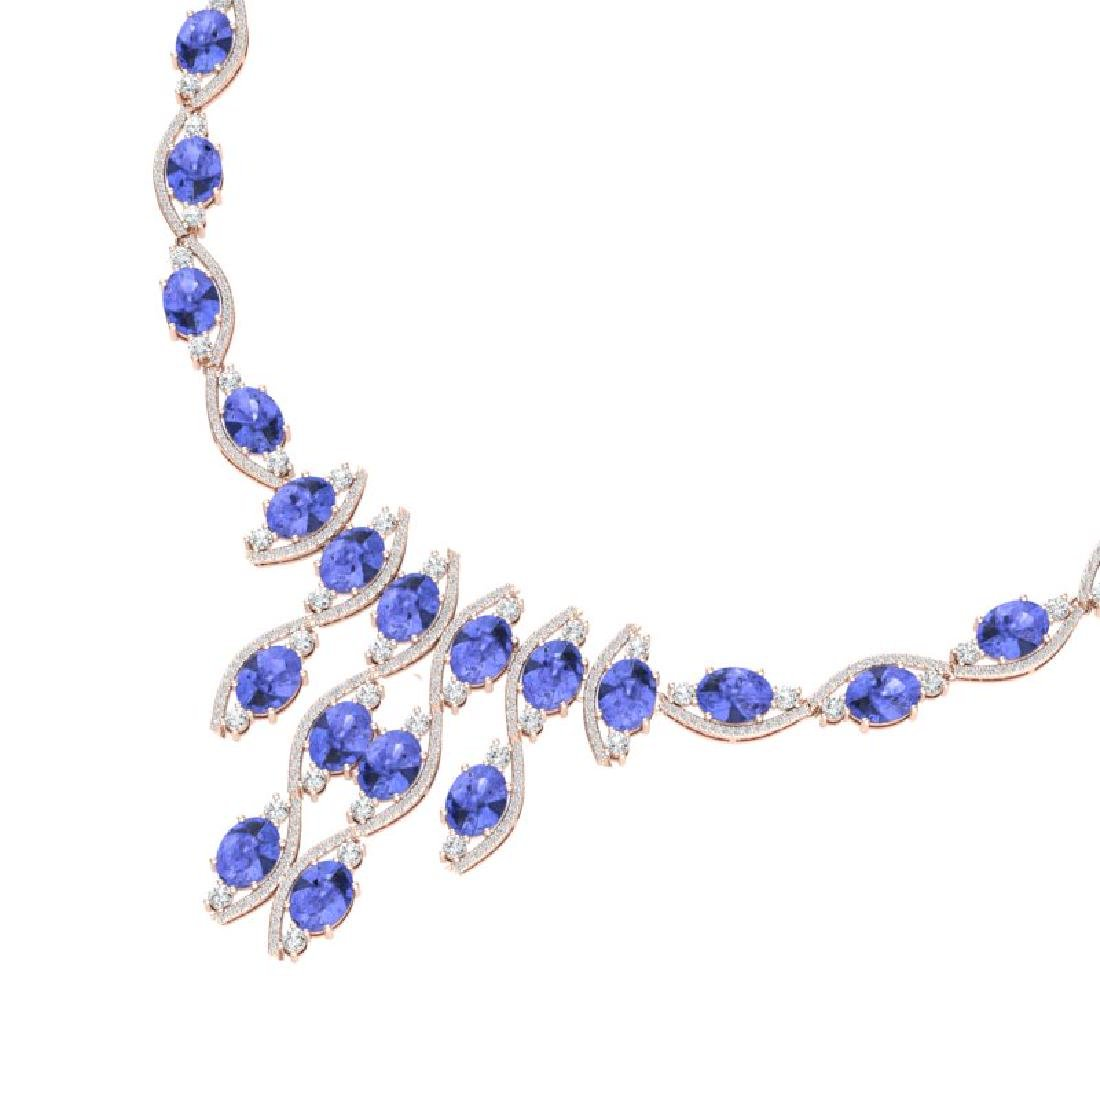 65.60 CTW Royalty Tanzanite & VS Diamond Necklace 18K